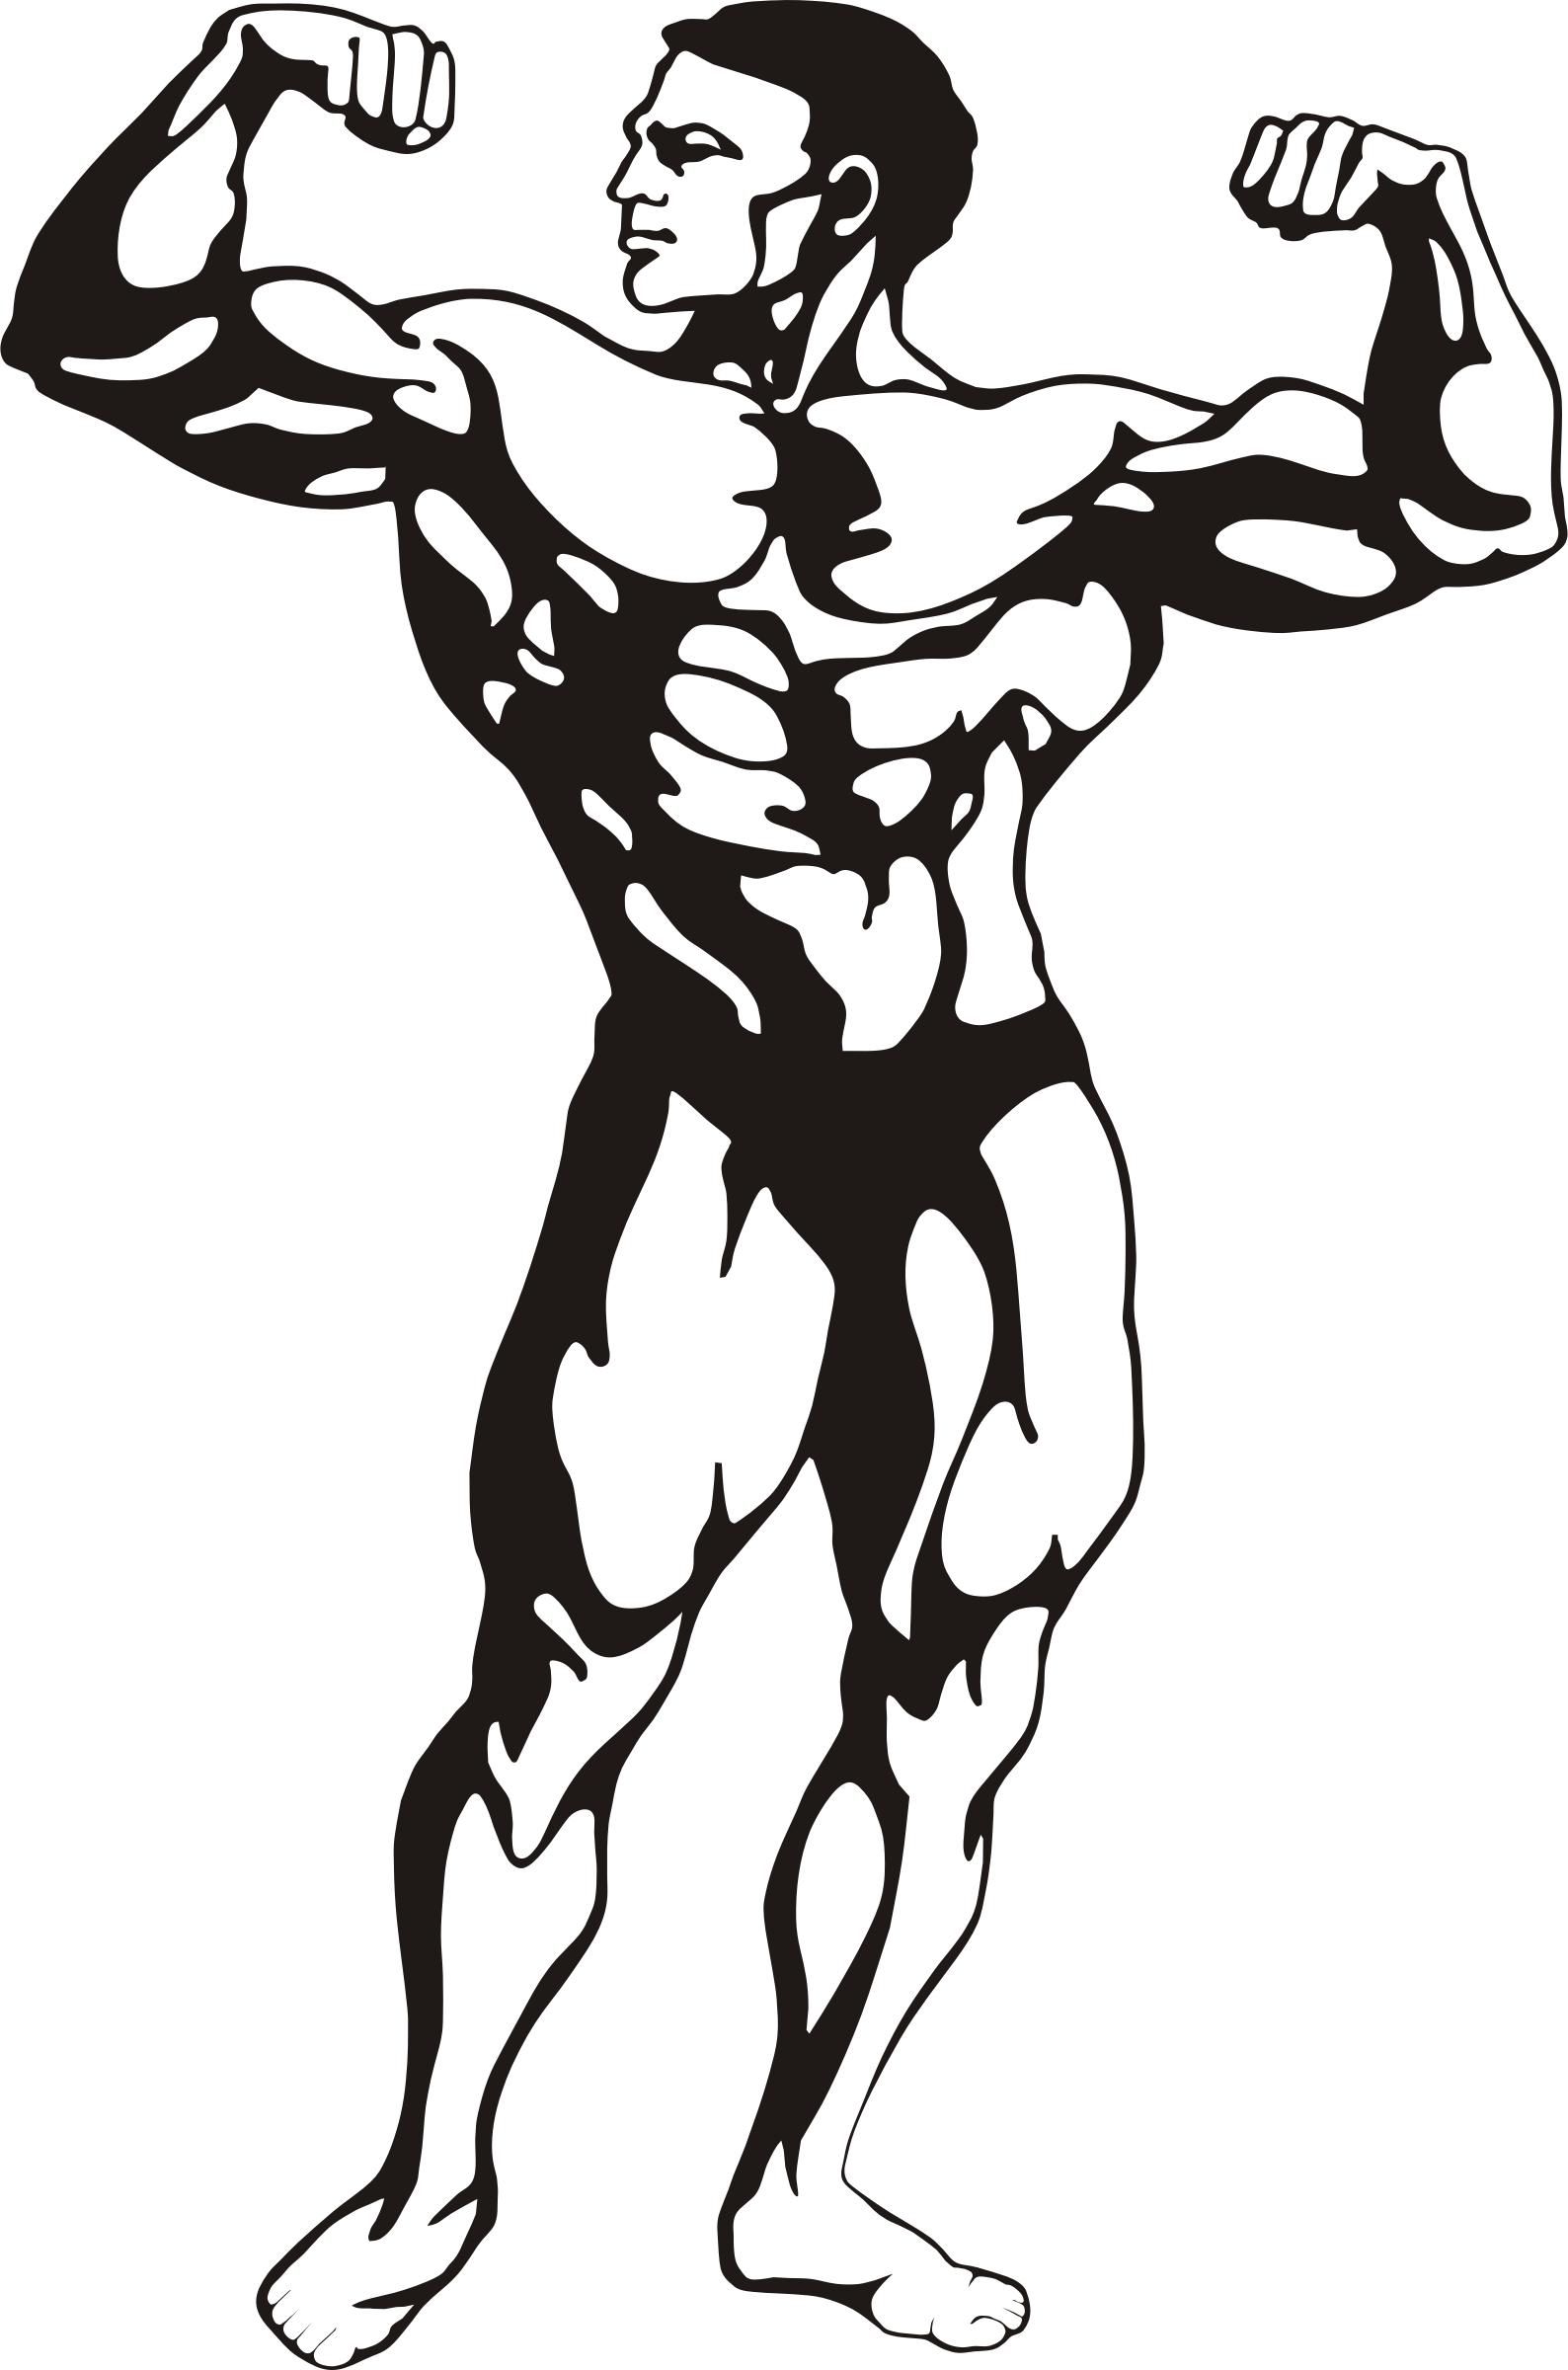 Book with muscles clipart image transparent Clipart - Fitness image transparent